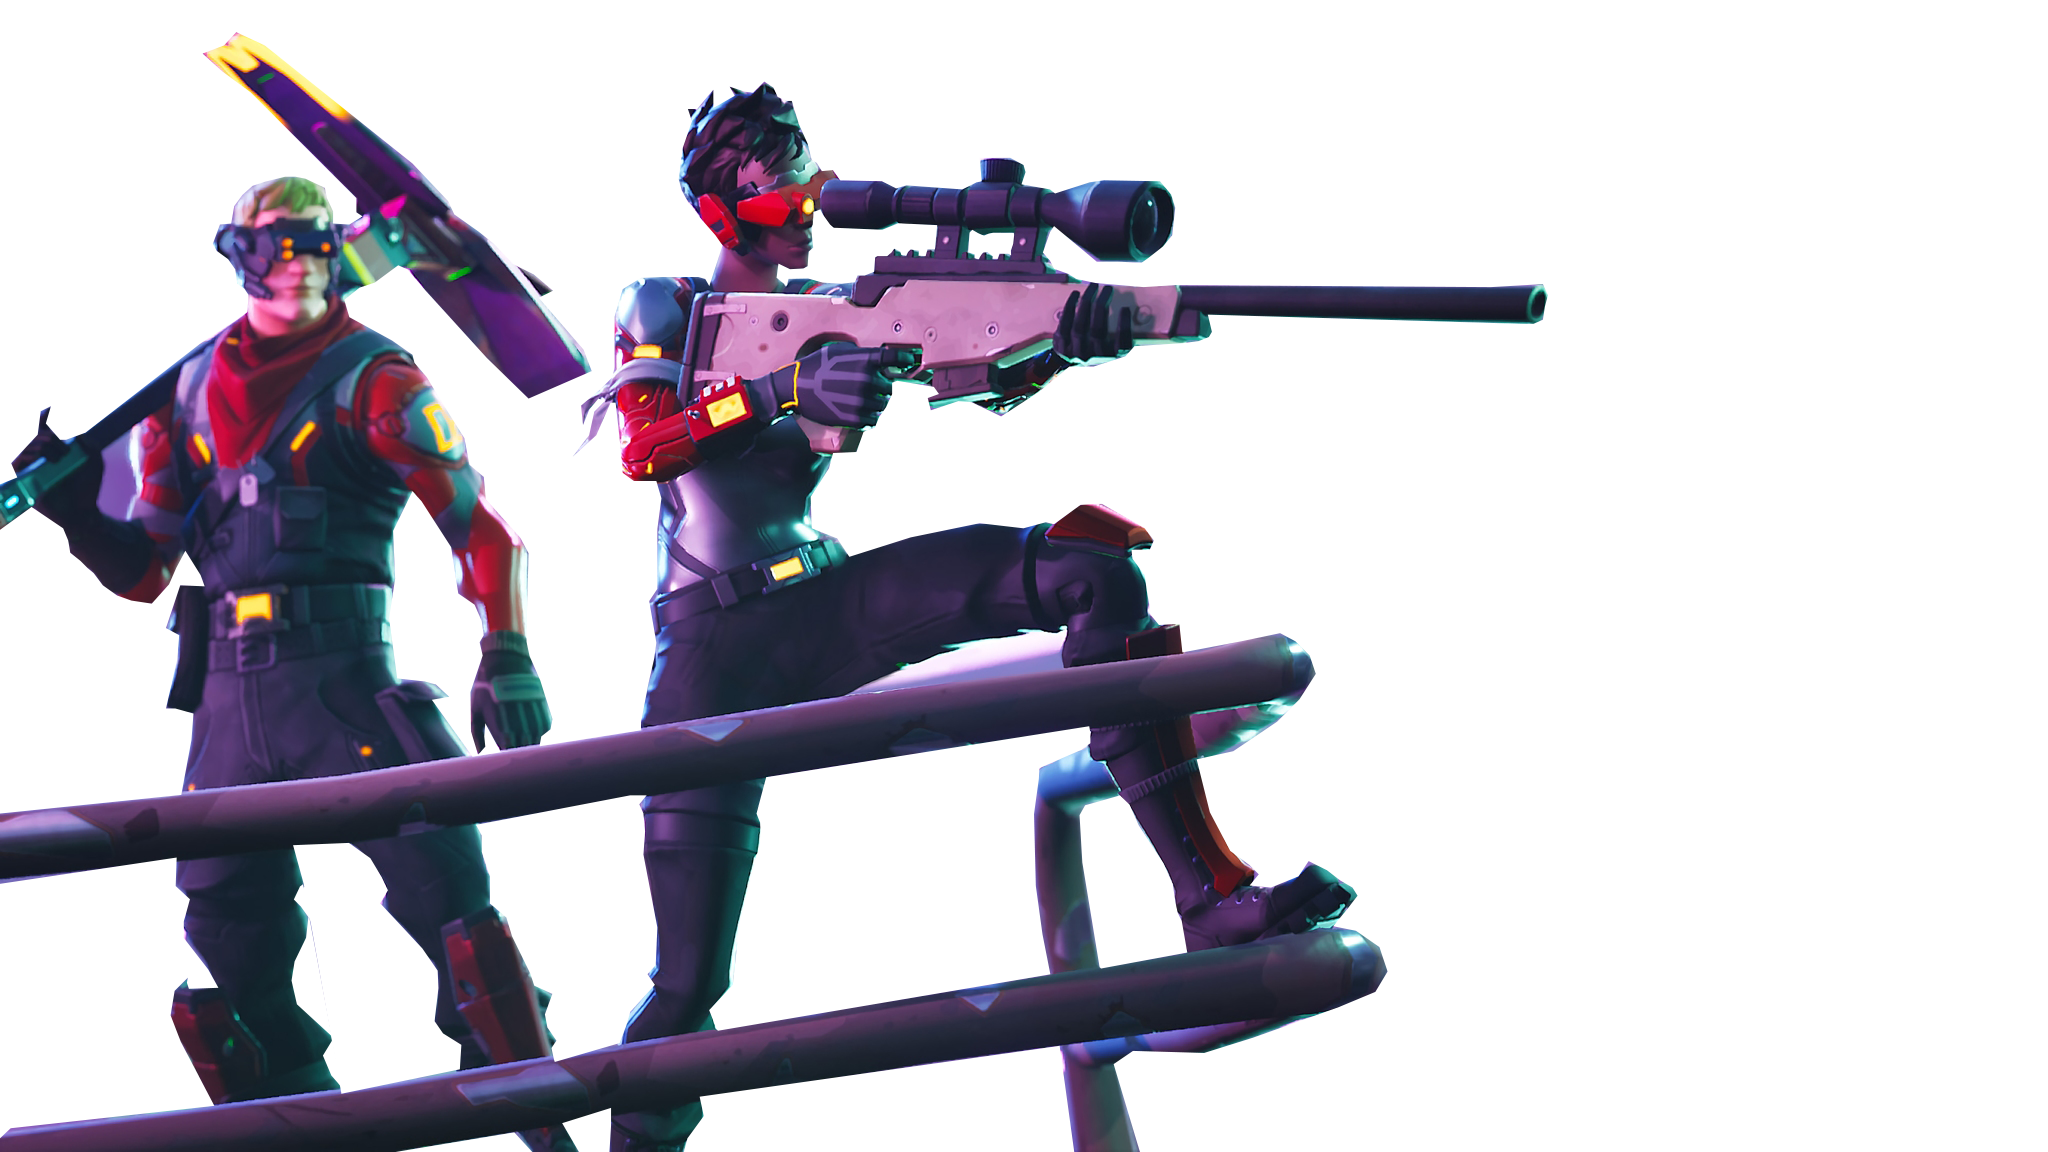 People Aiming Fortnite Thumbnail Template Png Image Purepng Free